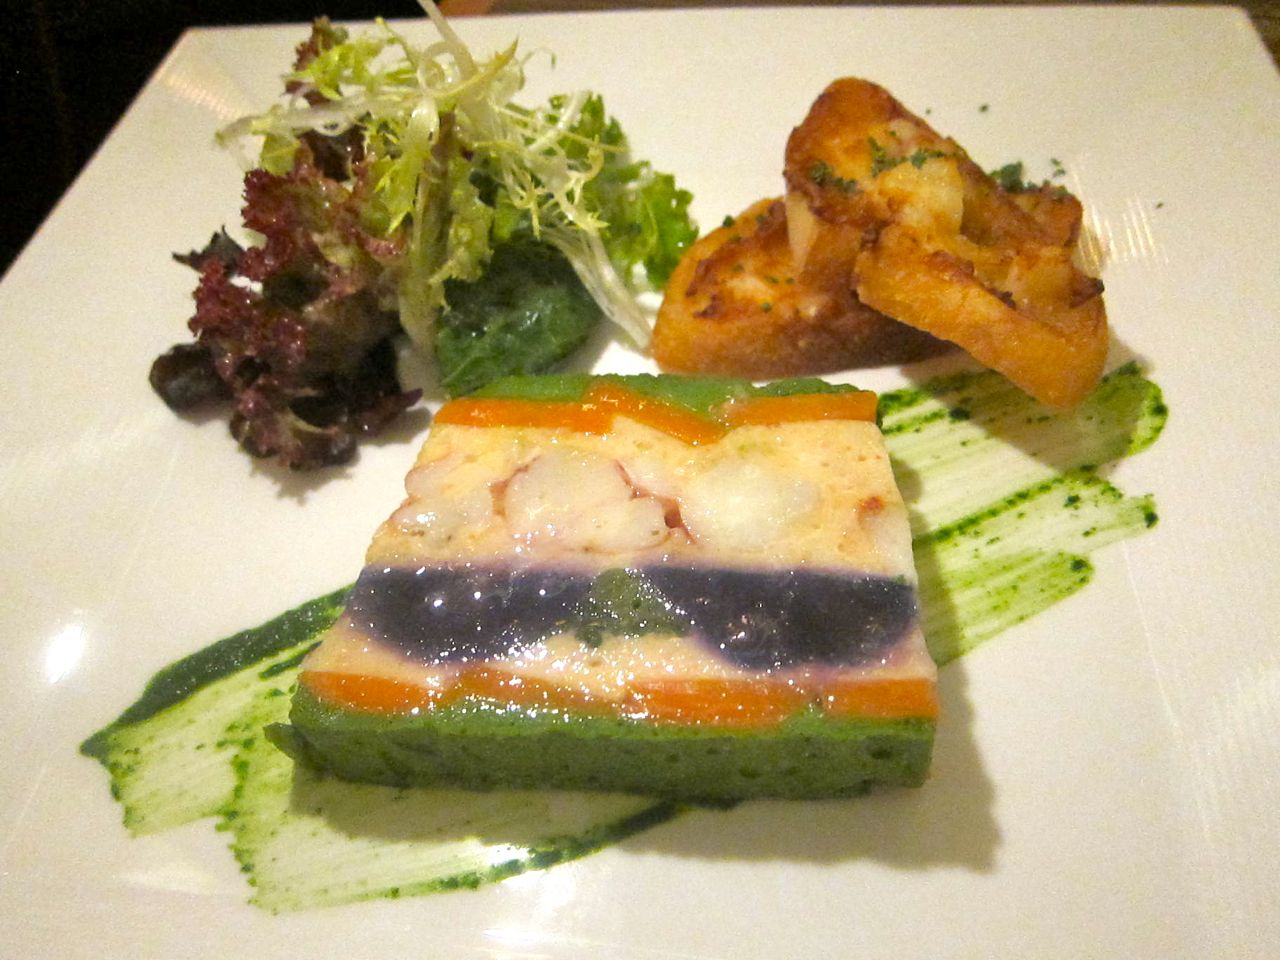 Chef Bellanco show off his impressive curriculum vitae with this lobster terrine.